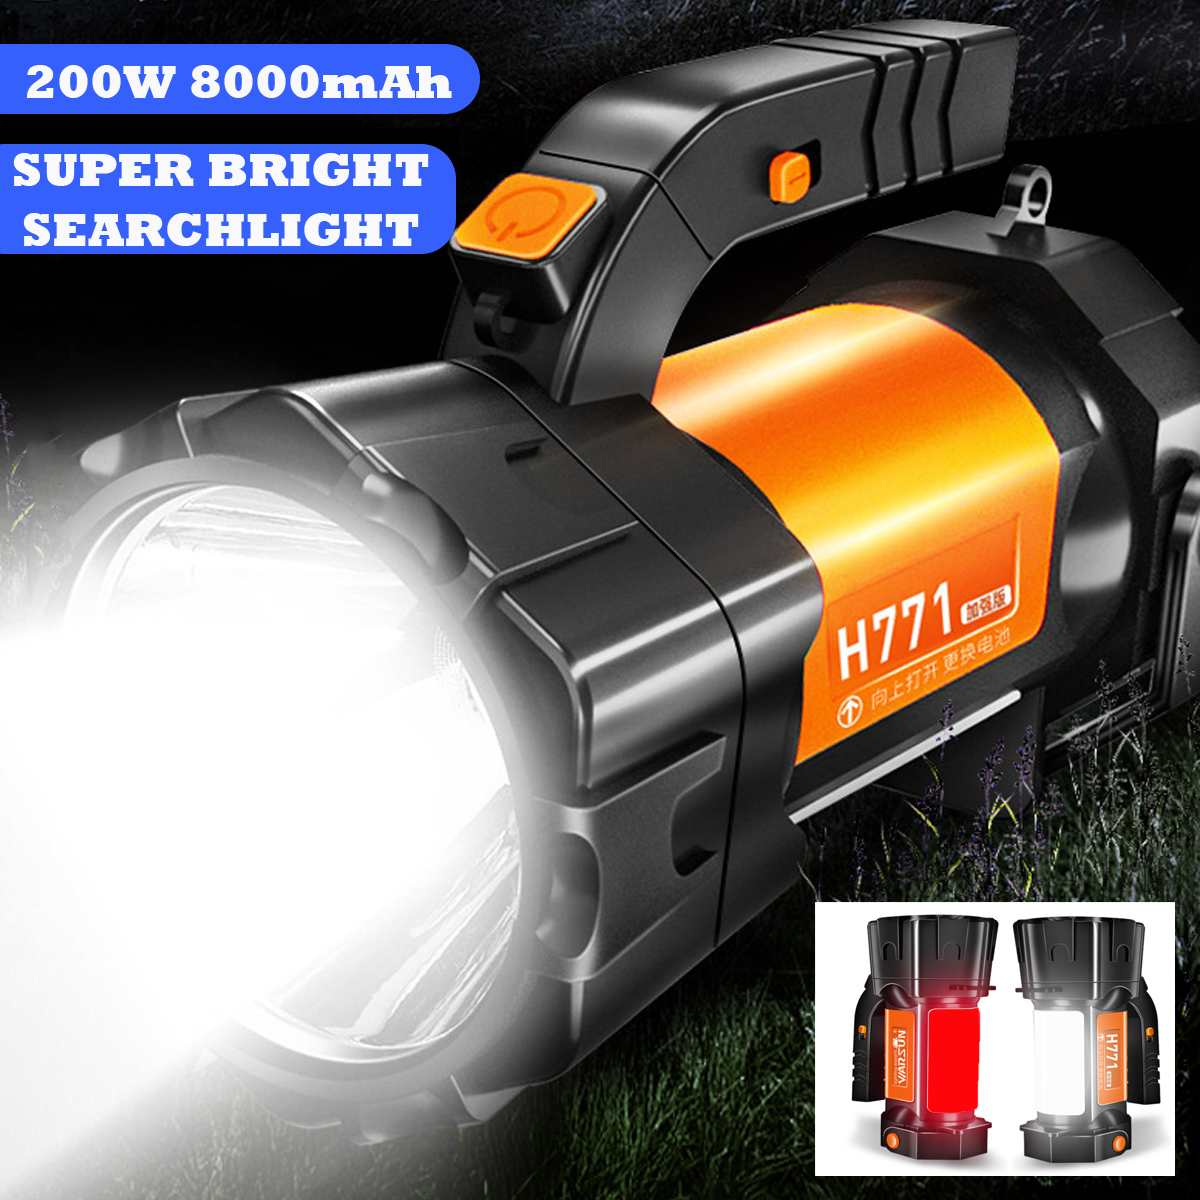 200W Bright Powerful LED Searchlight Handheld Flashlight Power Bank Rechargeable Battery Waterproof Torch For Outdoor